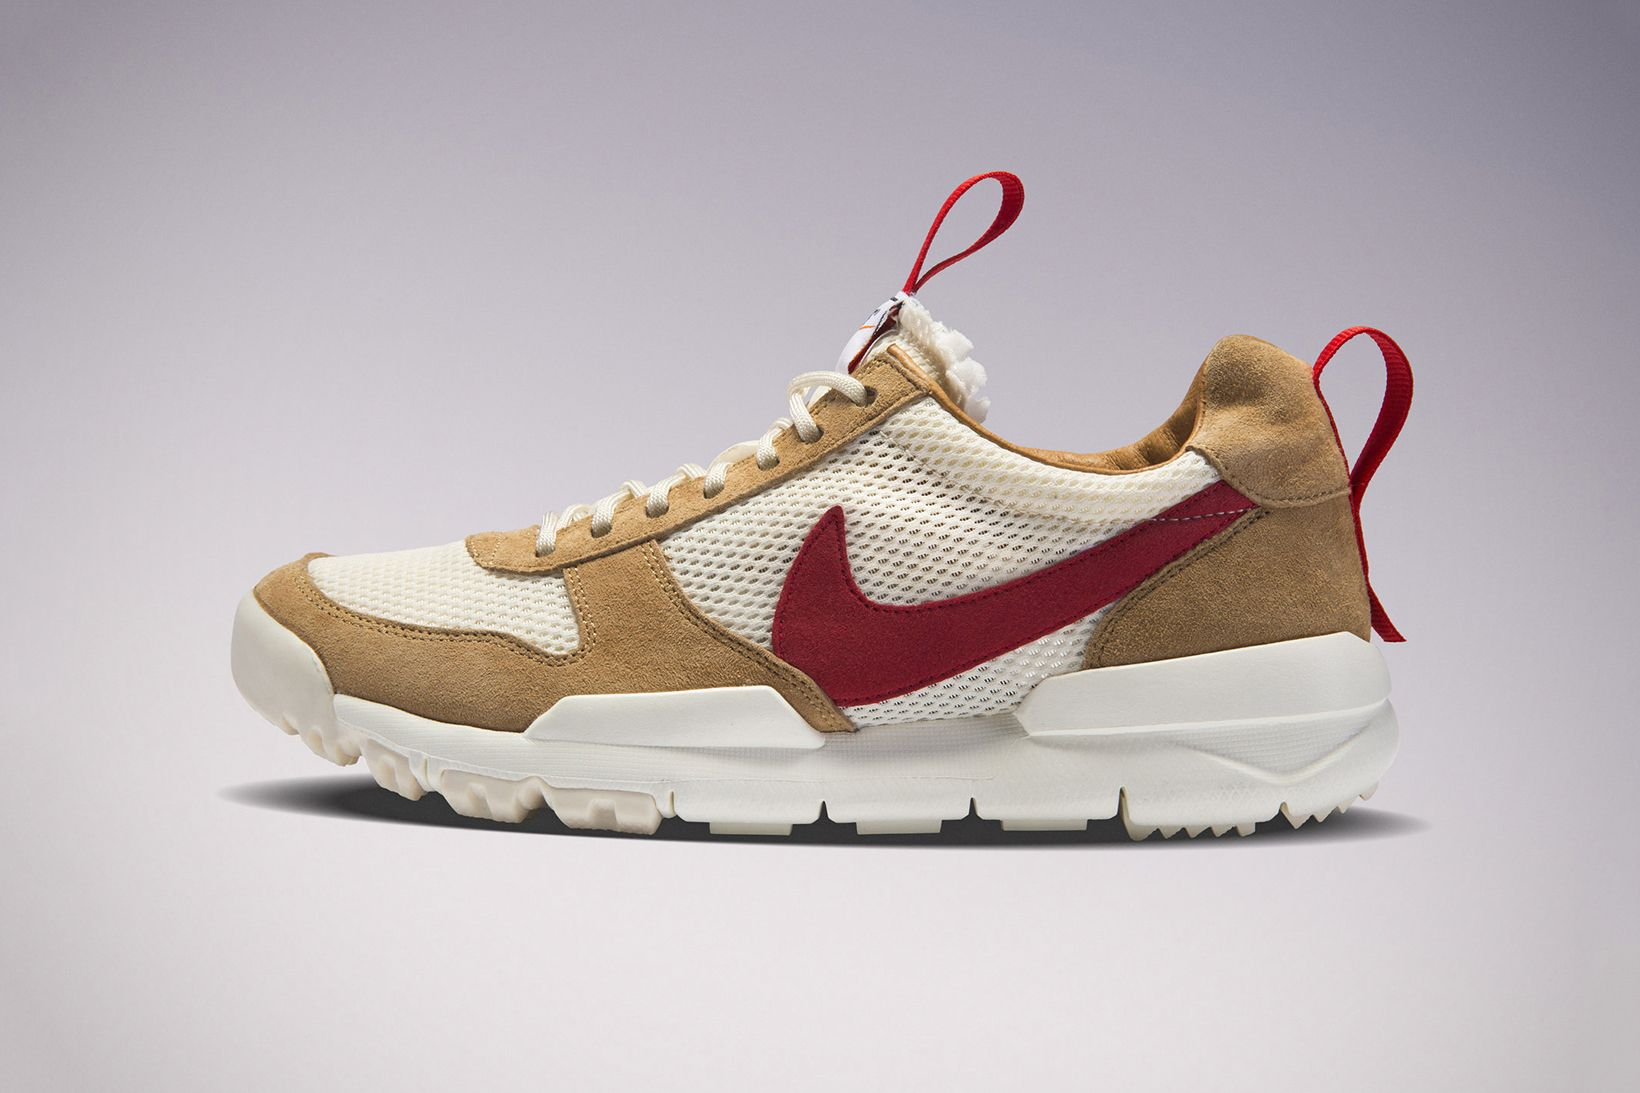 7b12a23dff27 Tom Sachs   Nike Are Bringing Back the Mars Yard Tom Sachs